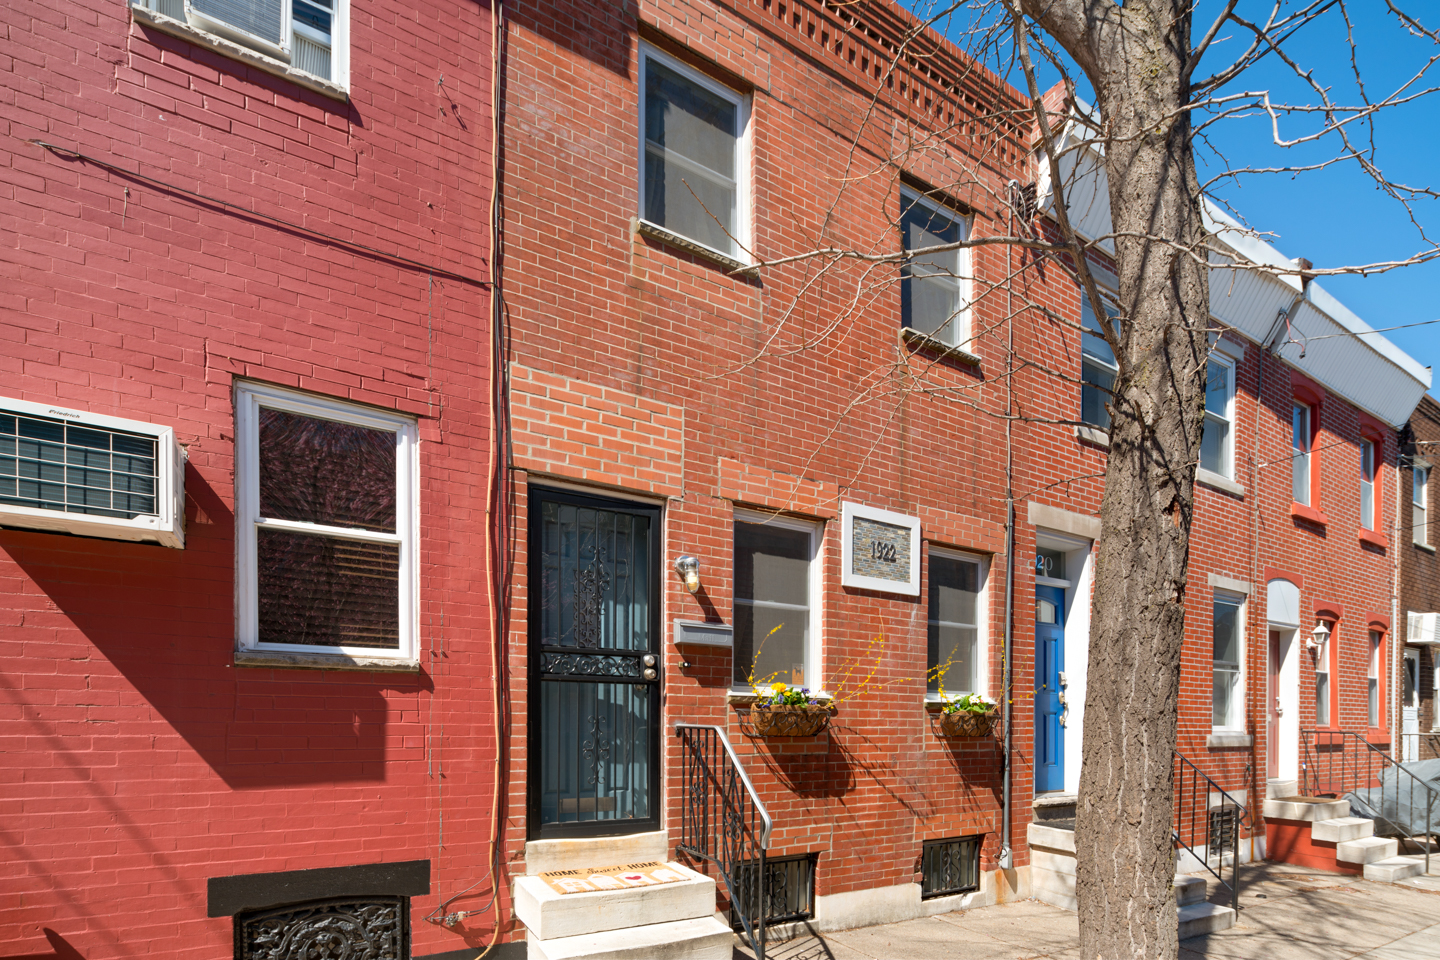 1922 S Sartain St-MLS-20.jpg